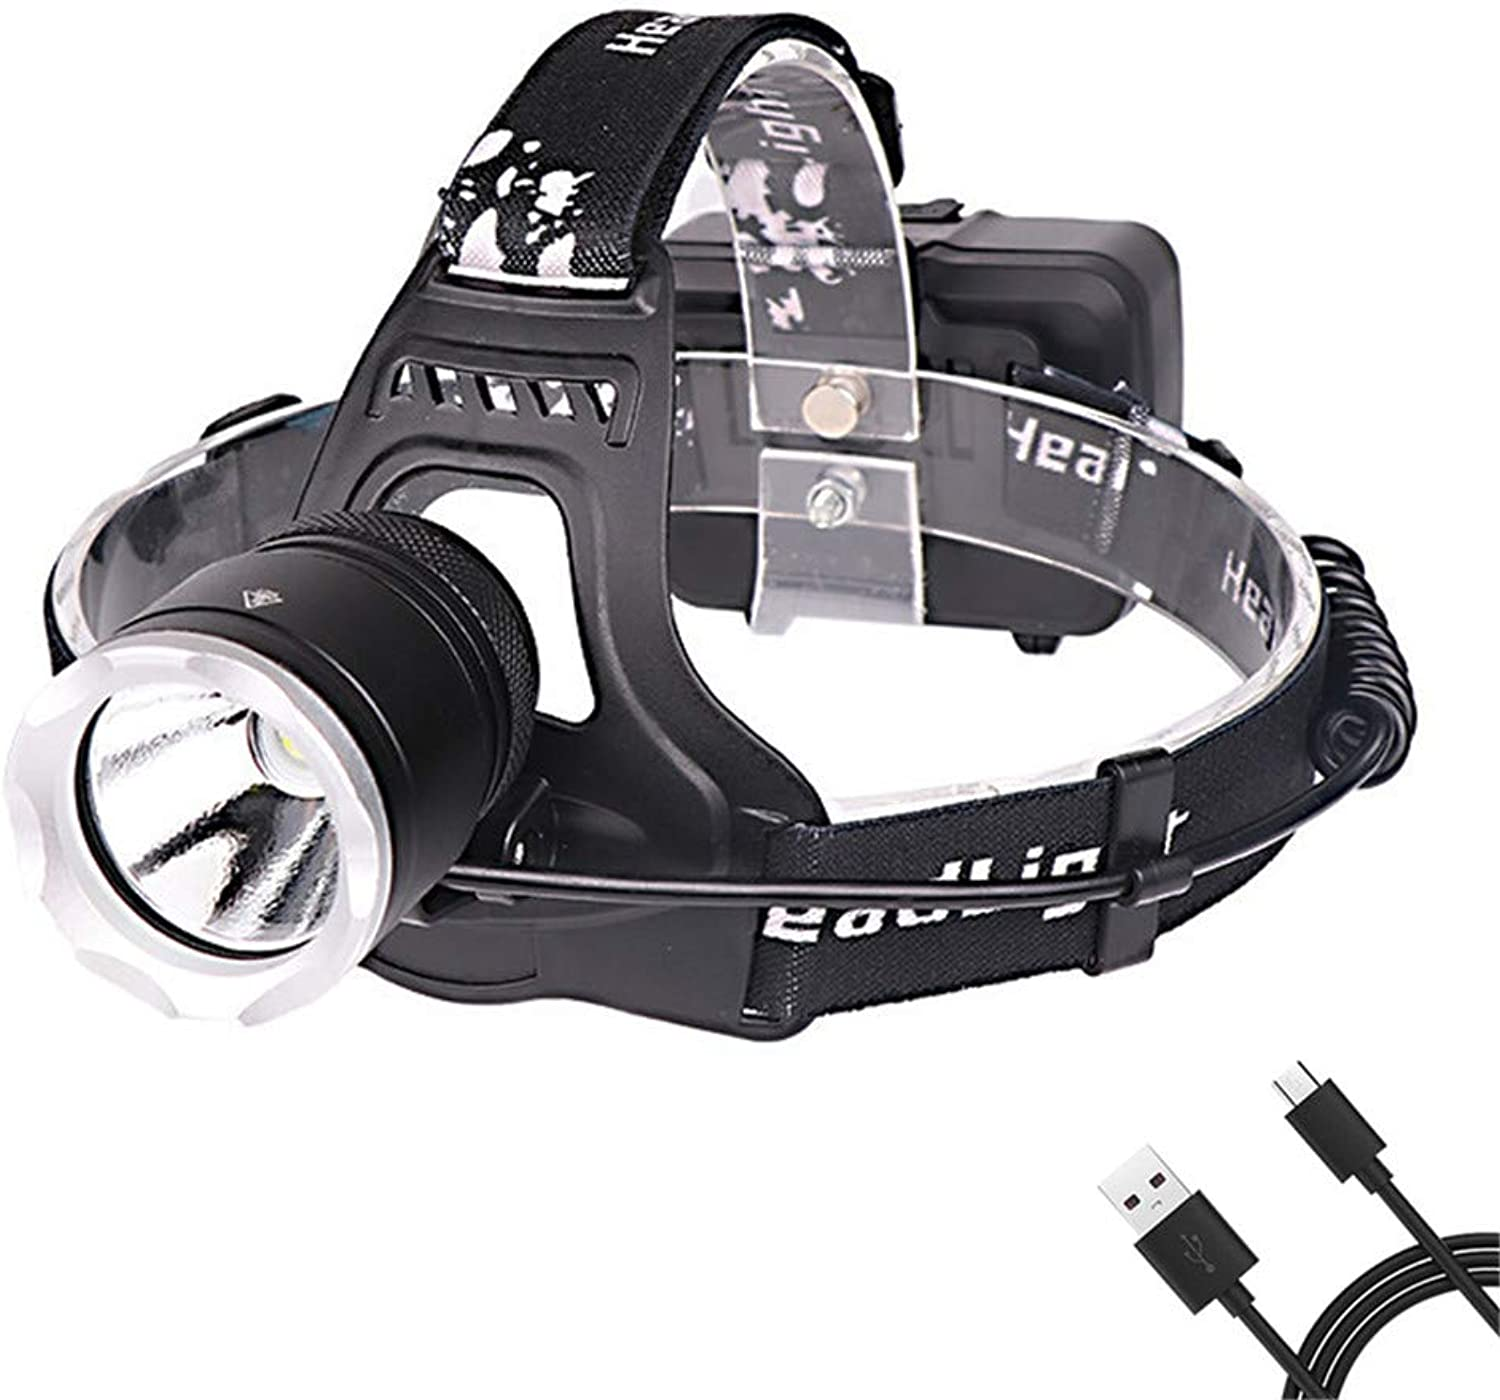 Led Head Torch, Zoomable USB Rechargeable Headlamp, 90 Degree Angle Adjustable Led Headlamp, 3 Modes Light Weight for Outdoor Work